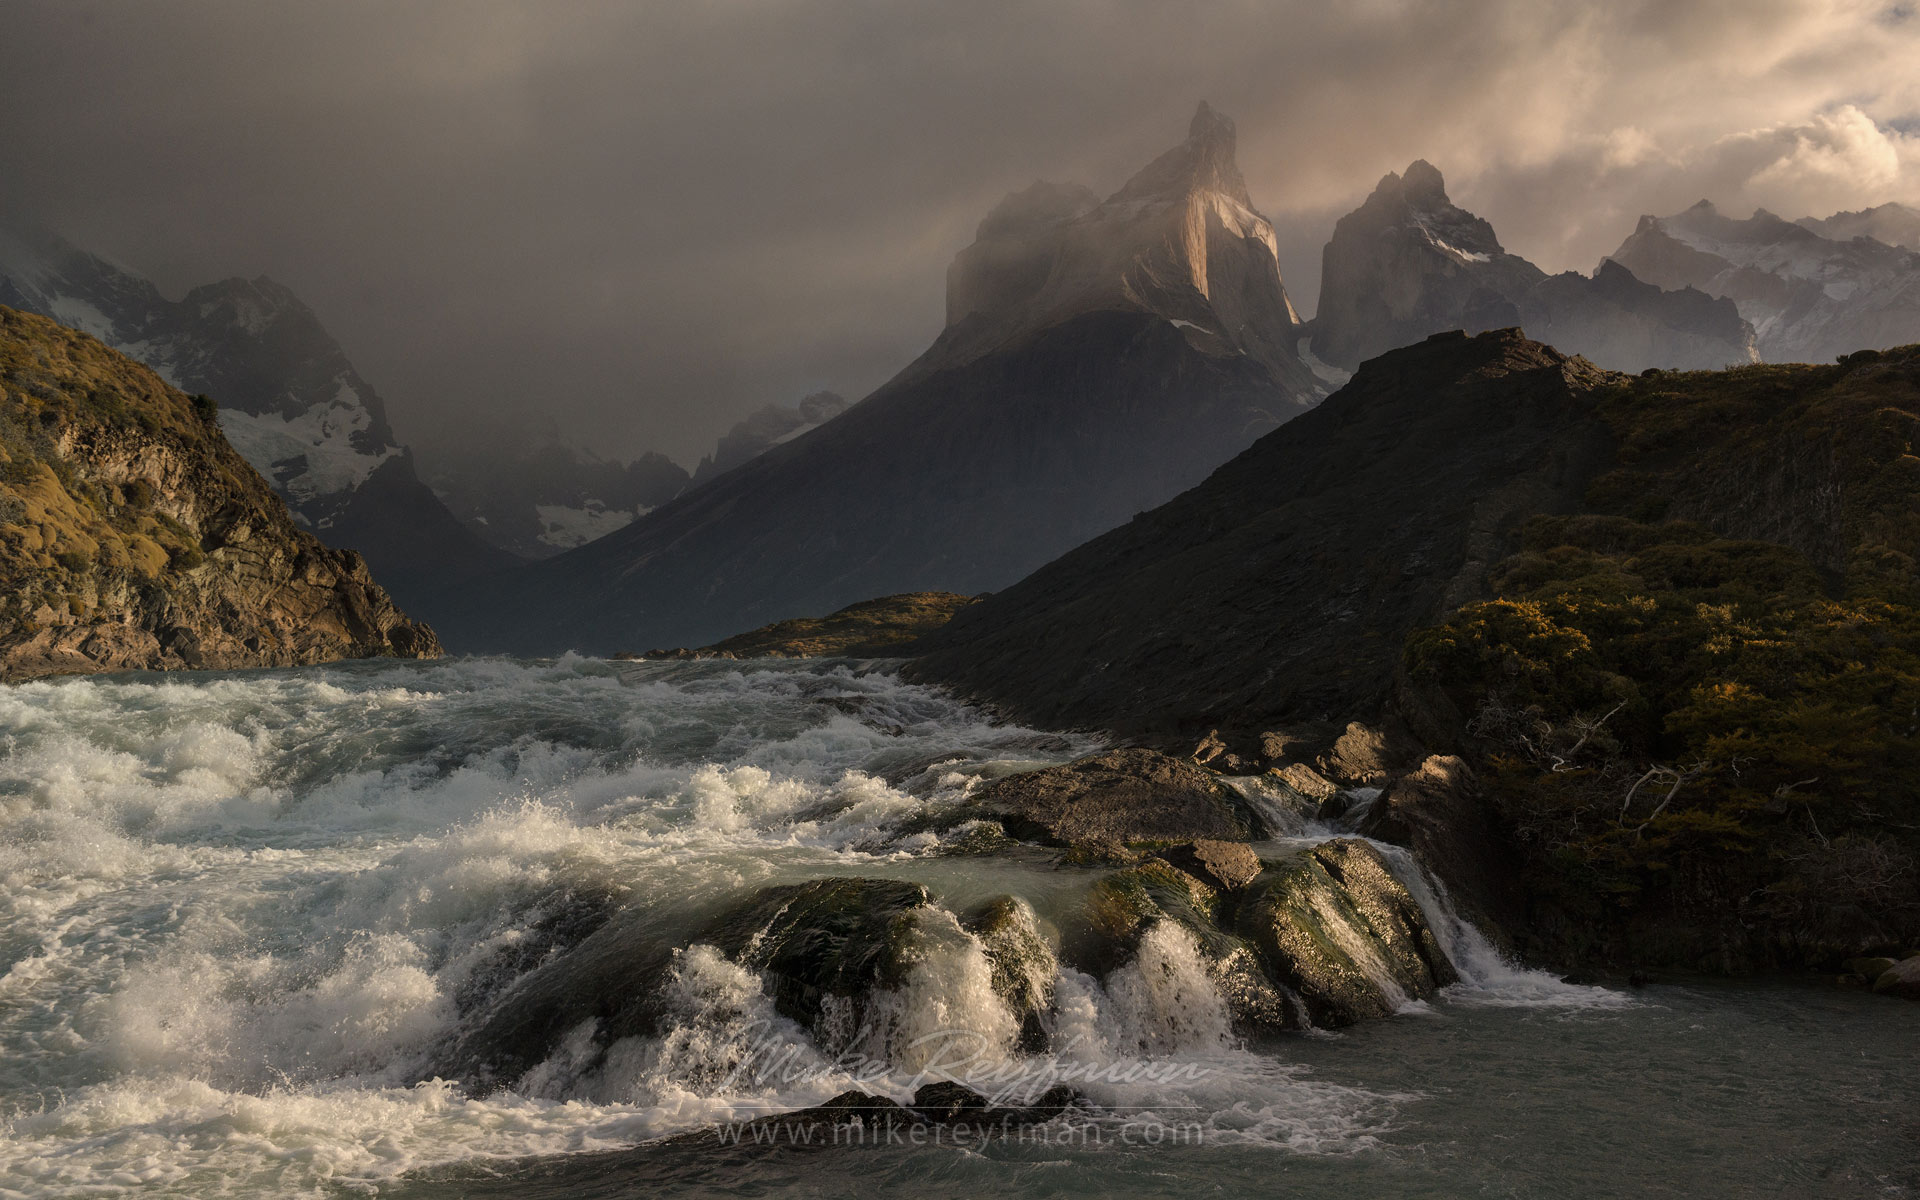 Stormy morning in Cordilleras. Rio Paine rapids and Cuernos del Paine. Torres del Paine National Park, Magallanes and Antartica Chilena Region XII, Patagonia, Chile. - Torres-Del-Paine-National-Park-Patagonia-Chile - Mike Reyfman Photography